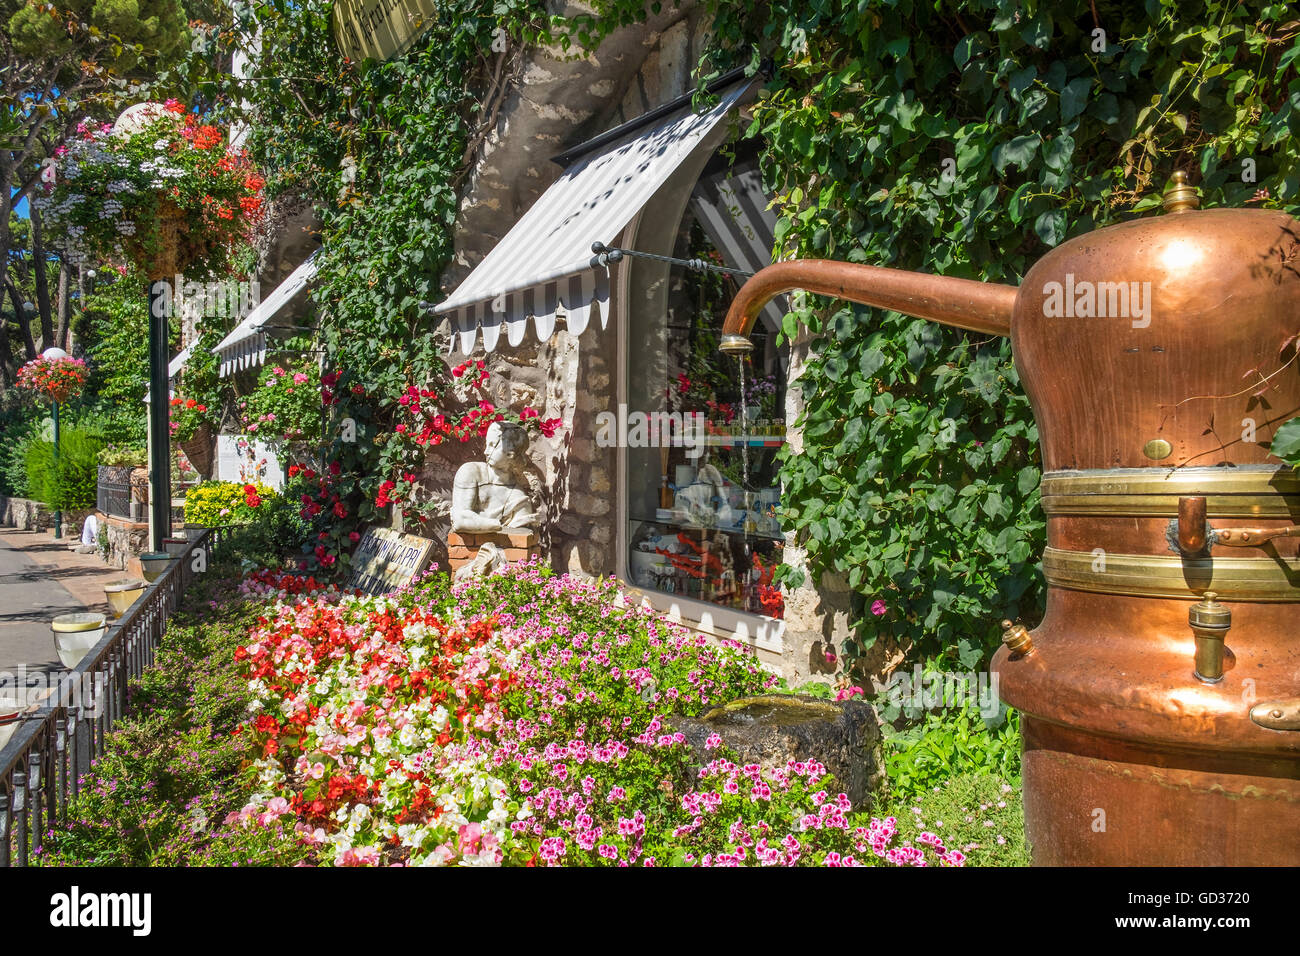 The garden at the entrance to the Carthusia perfume building on the island of Capri, Italy - Stock Image